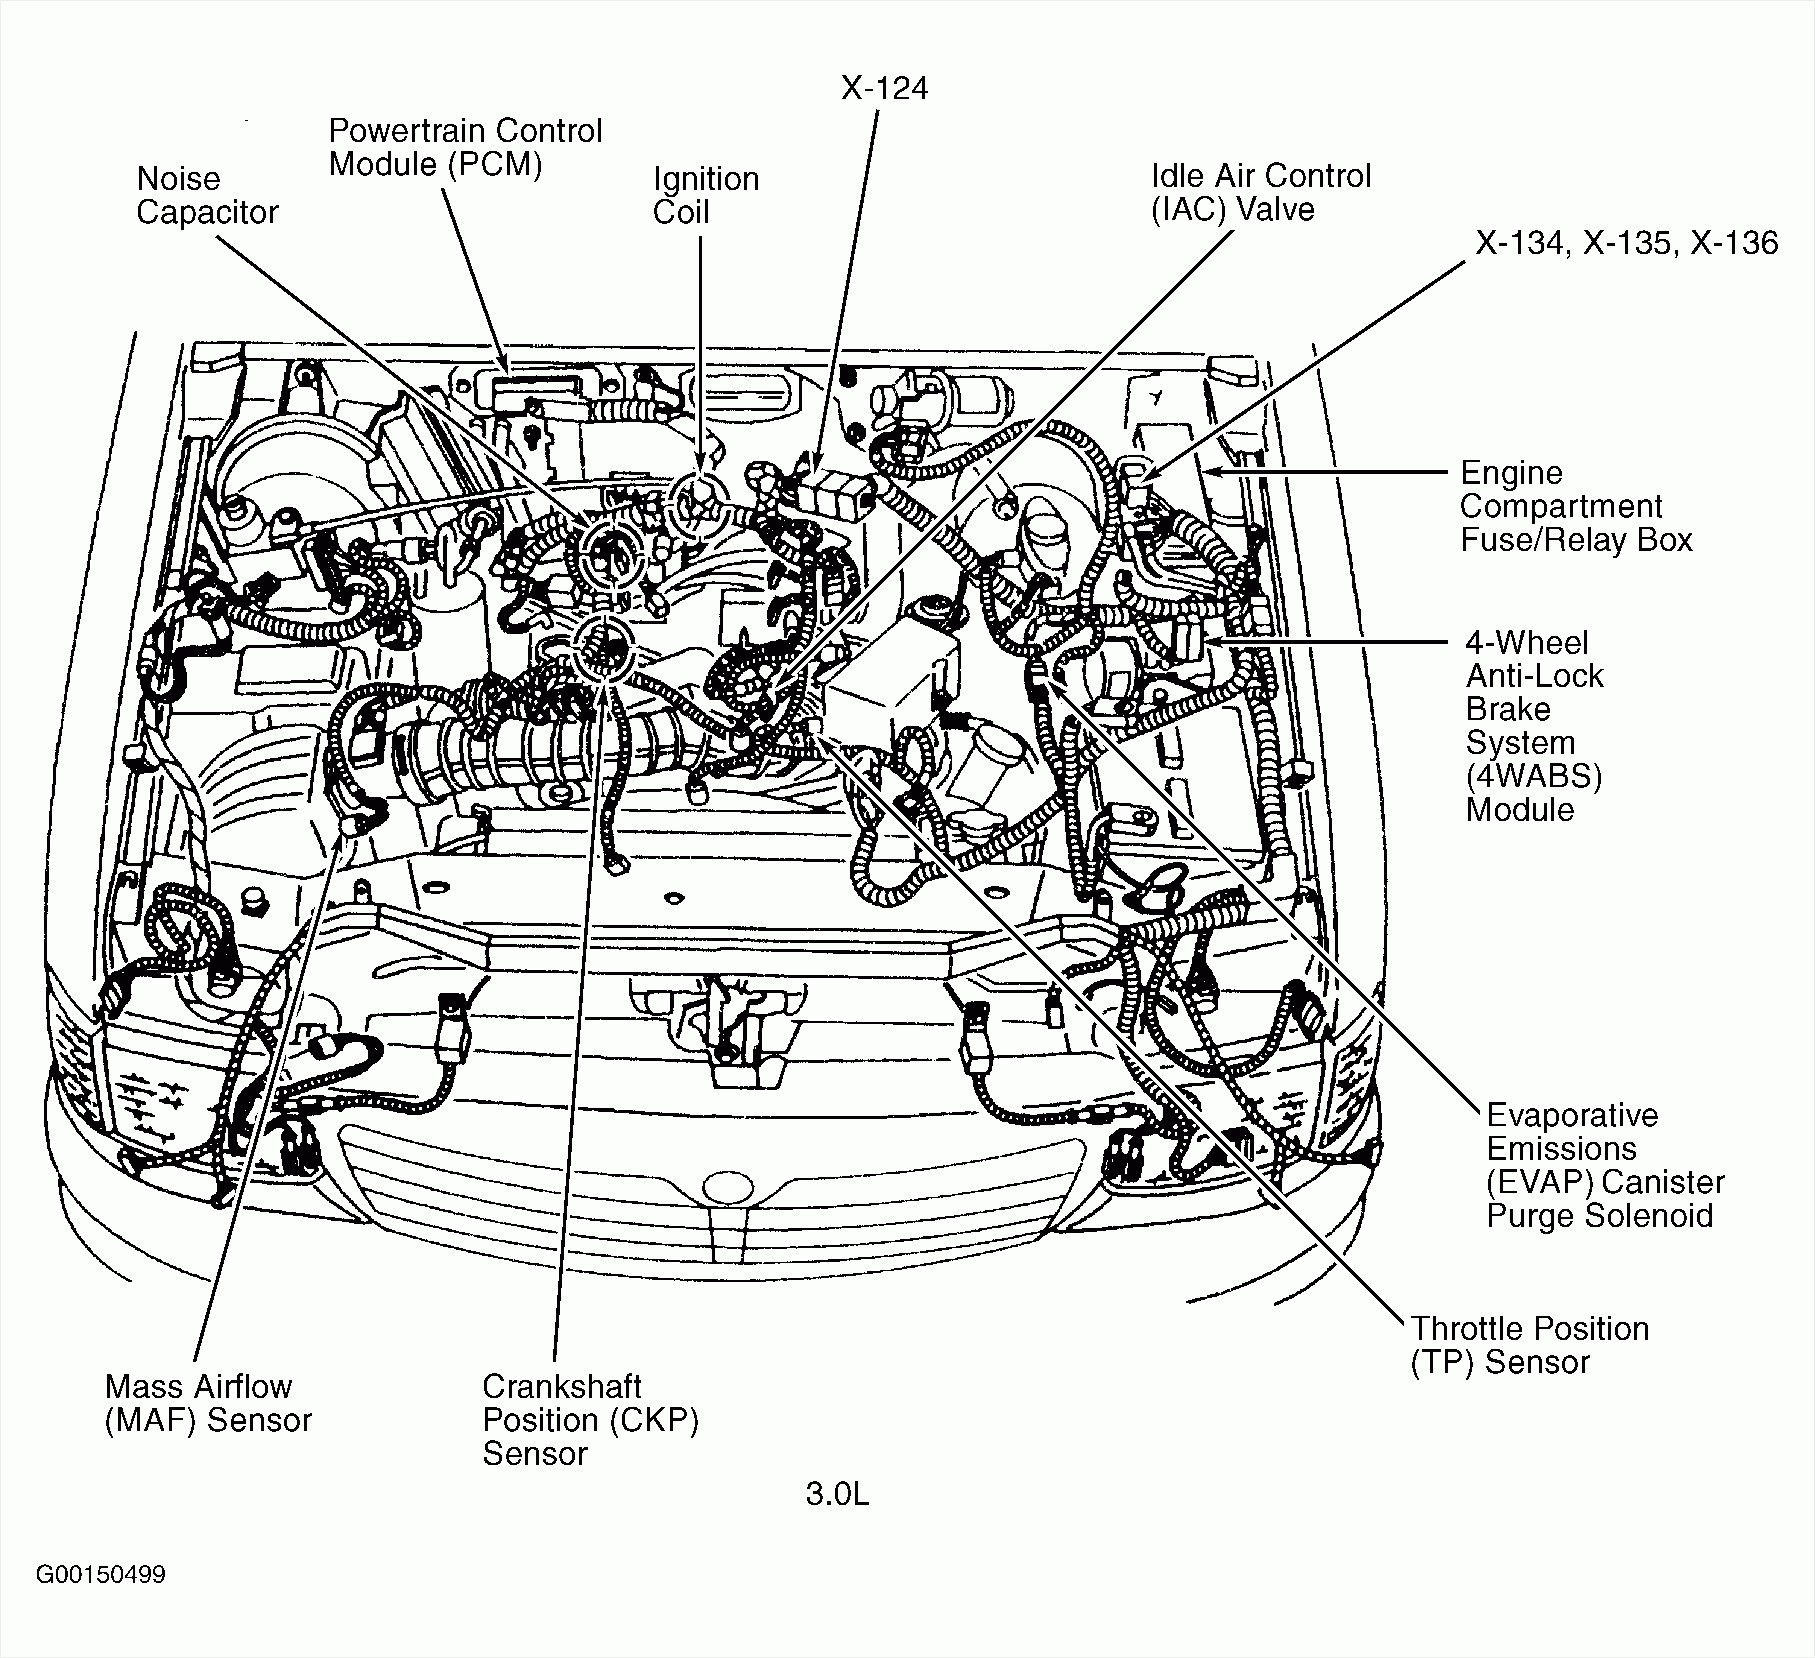 2002 miata engine bay diagram wiring diagrams database 2002 miata engine bay diagram wiring